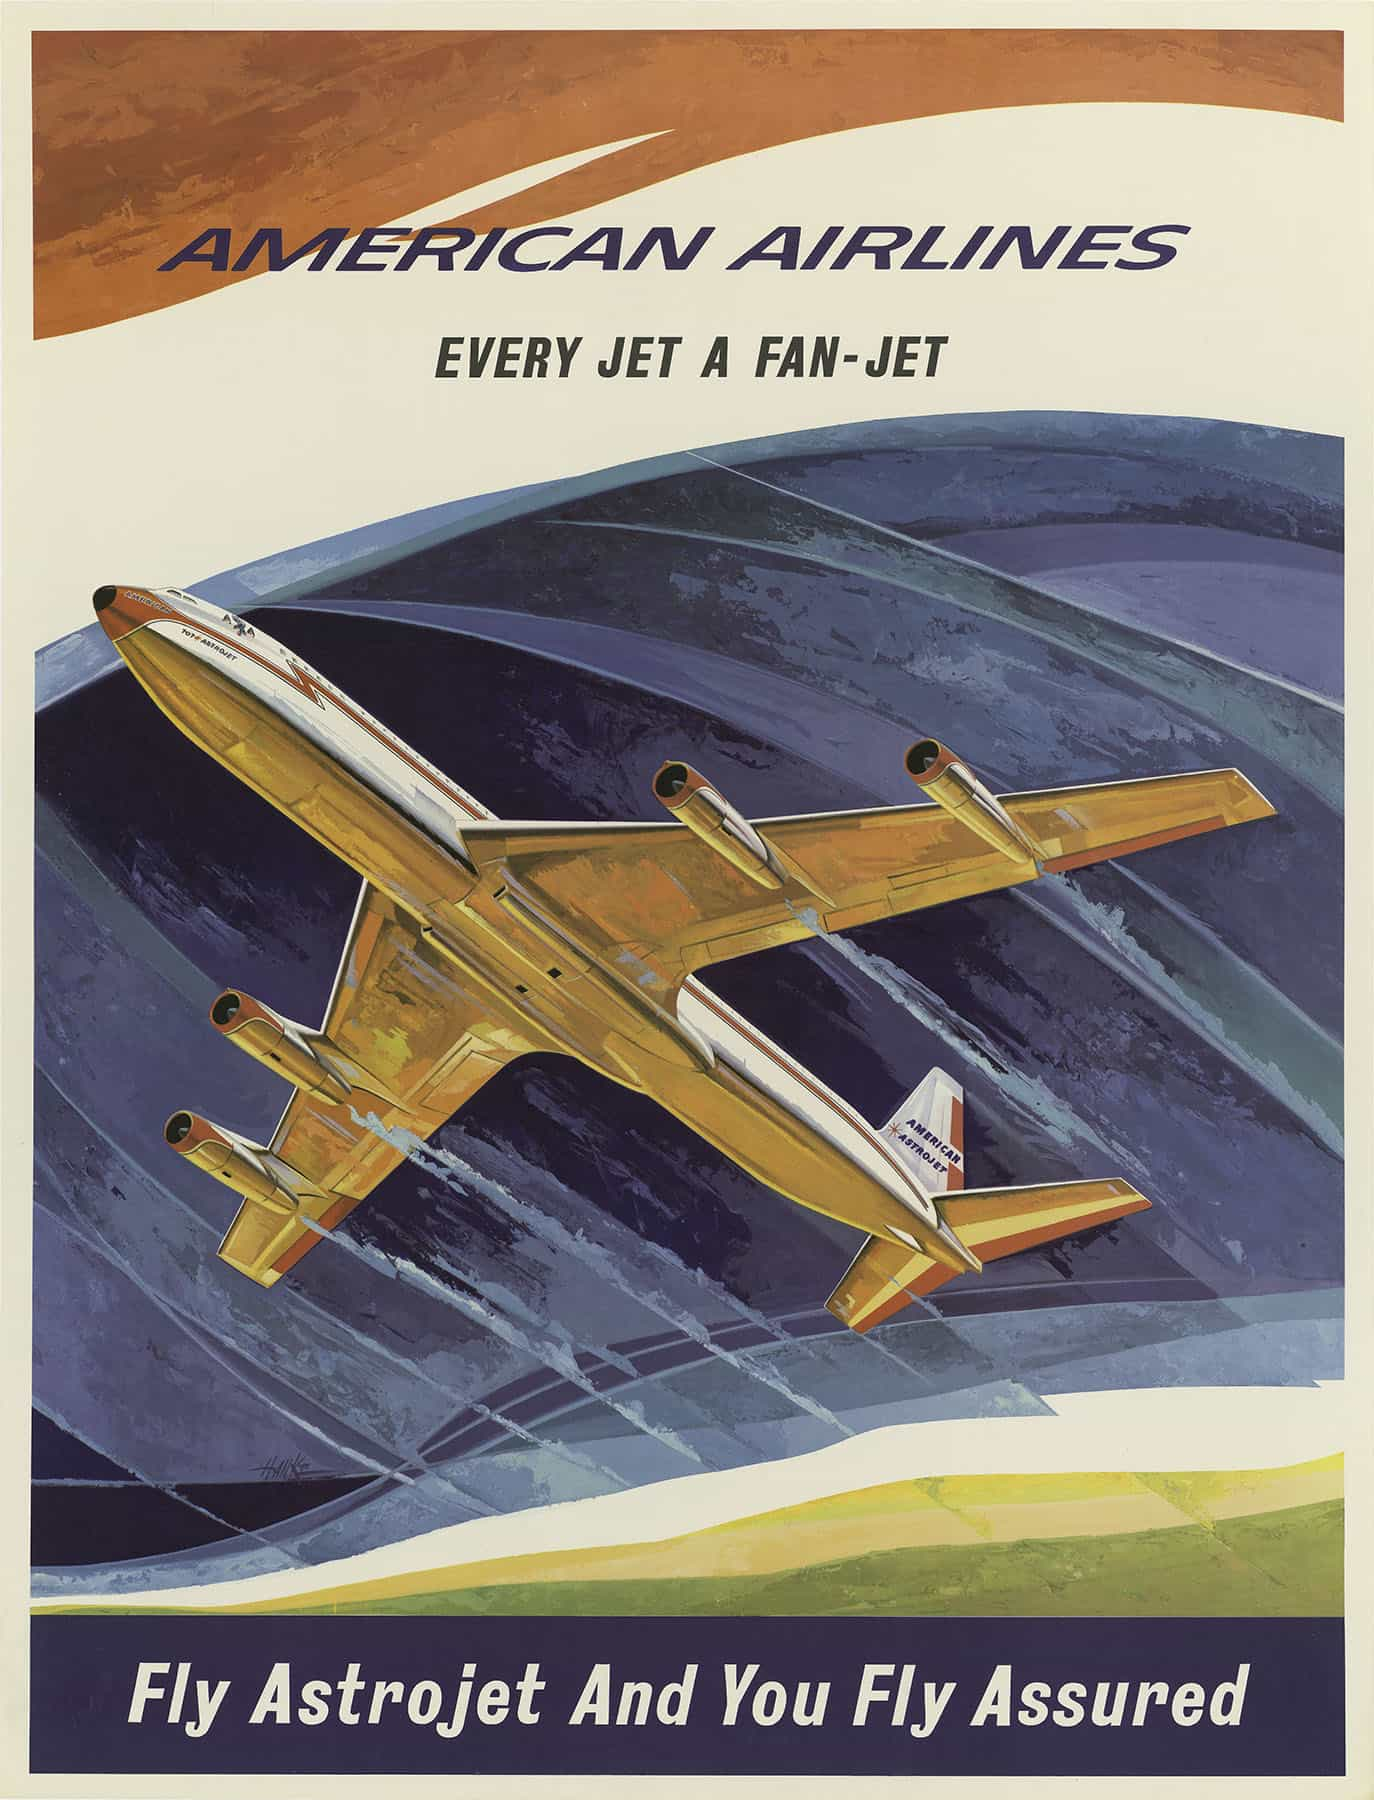 Vintage American Airlines Poster Every Jet A Fan-Jet